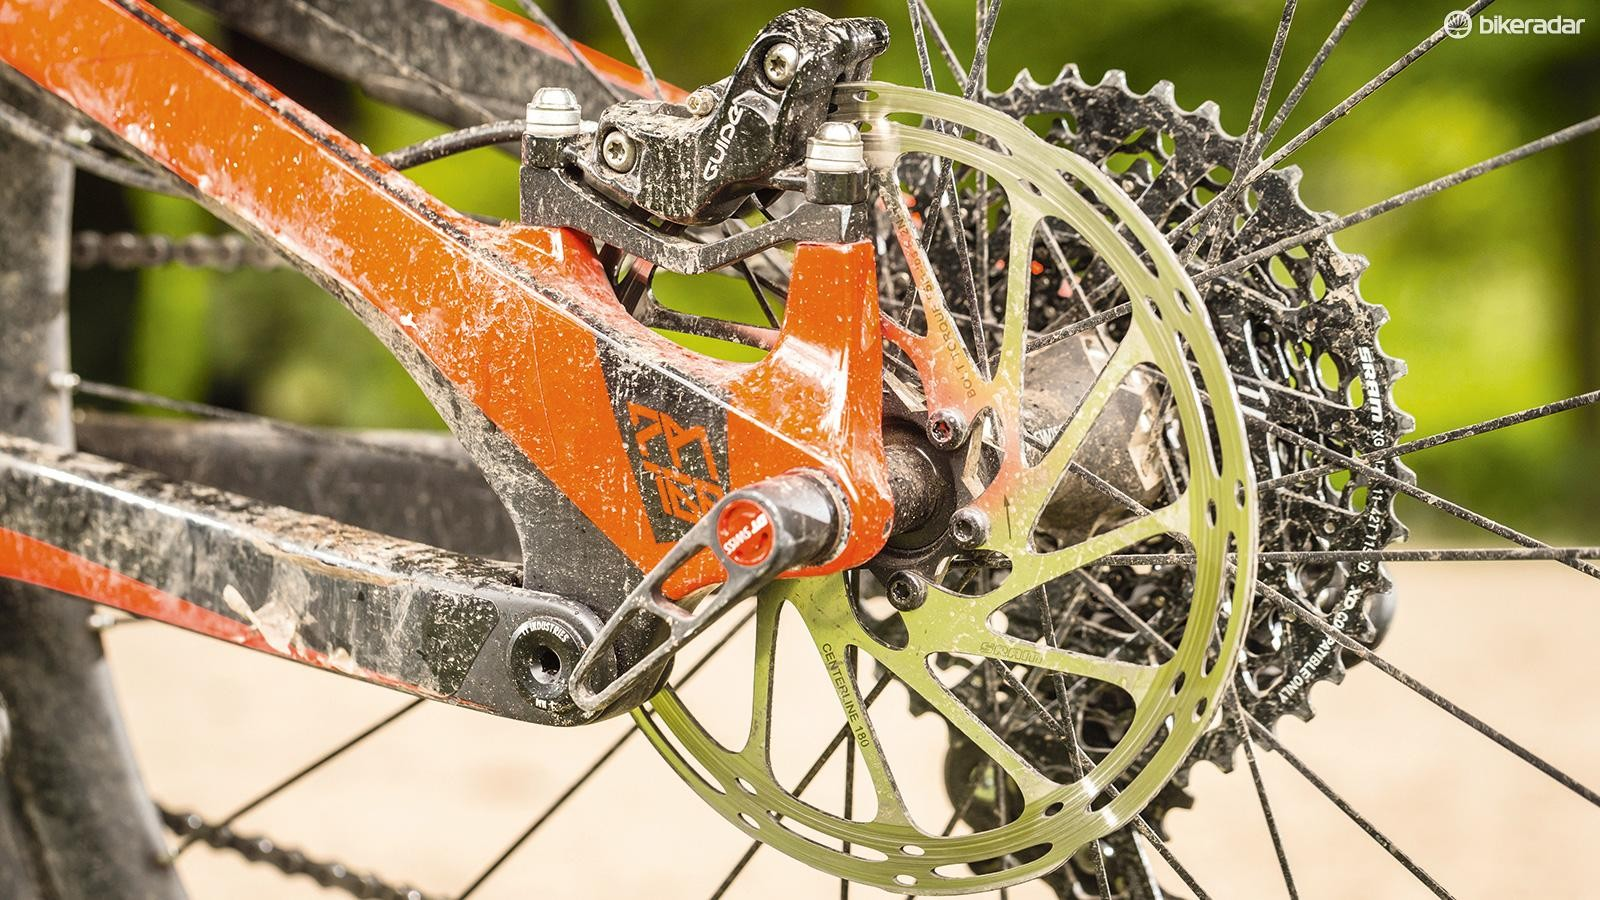 SRAM's Guide Ultimate brakes offer plenty of stopping power